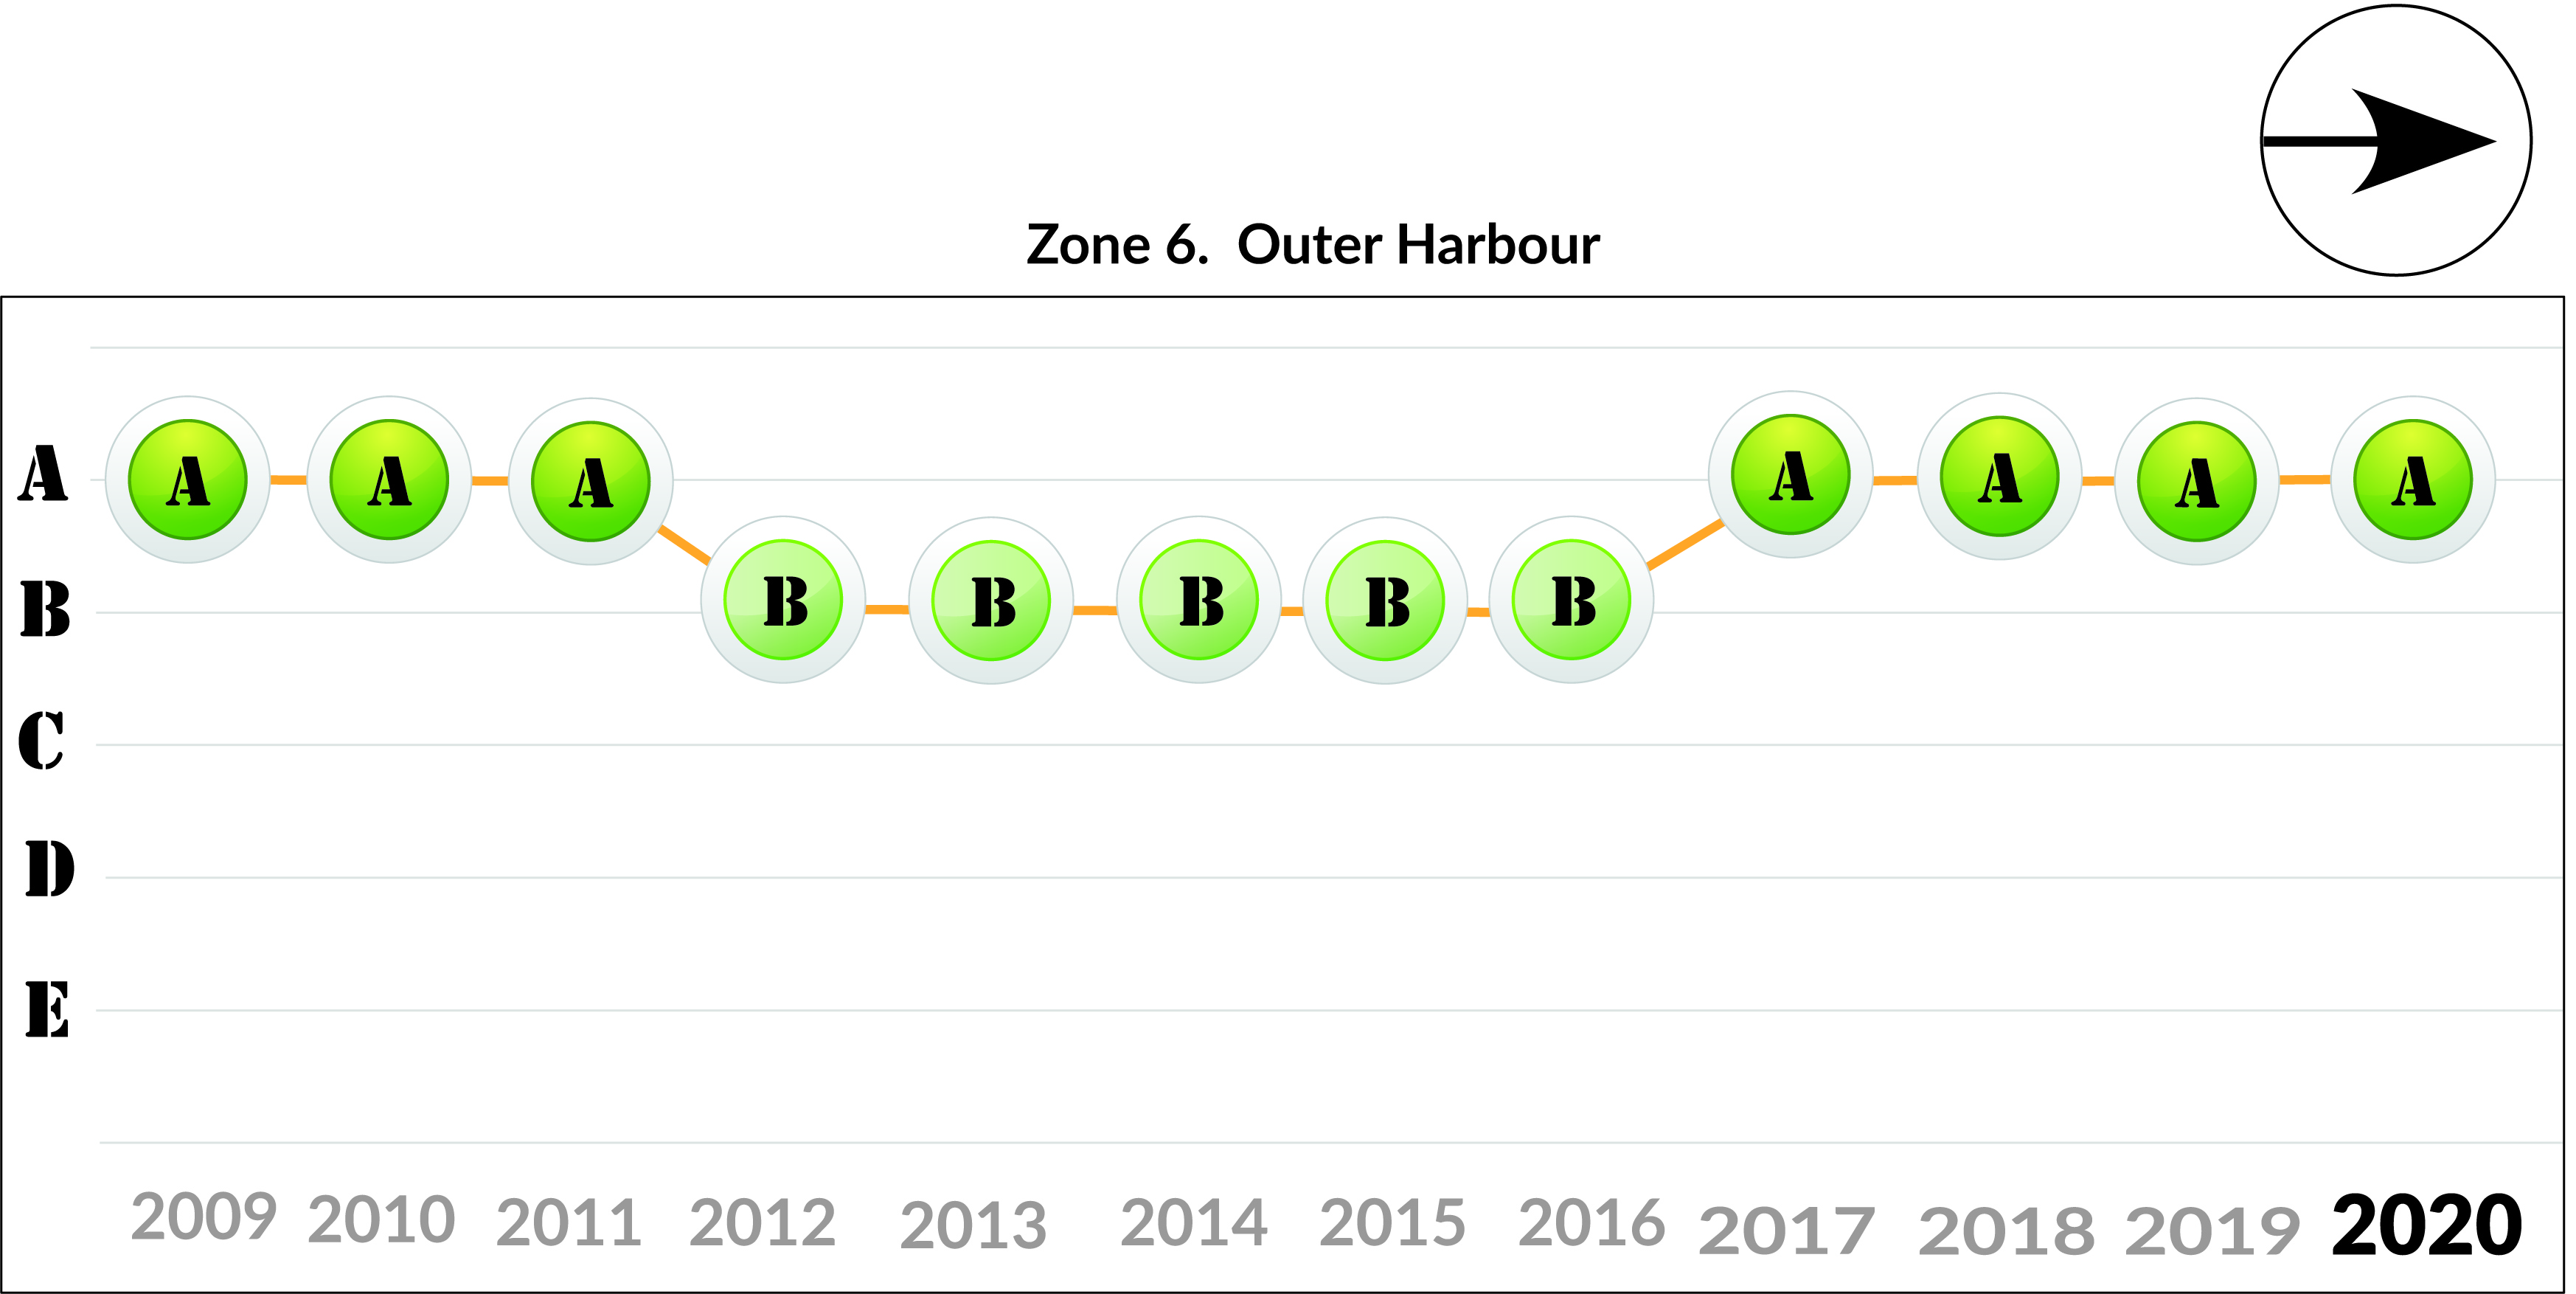 Zone 6 - Outer Harbour trend 2020